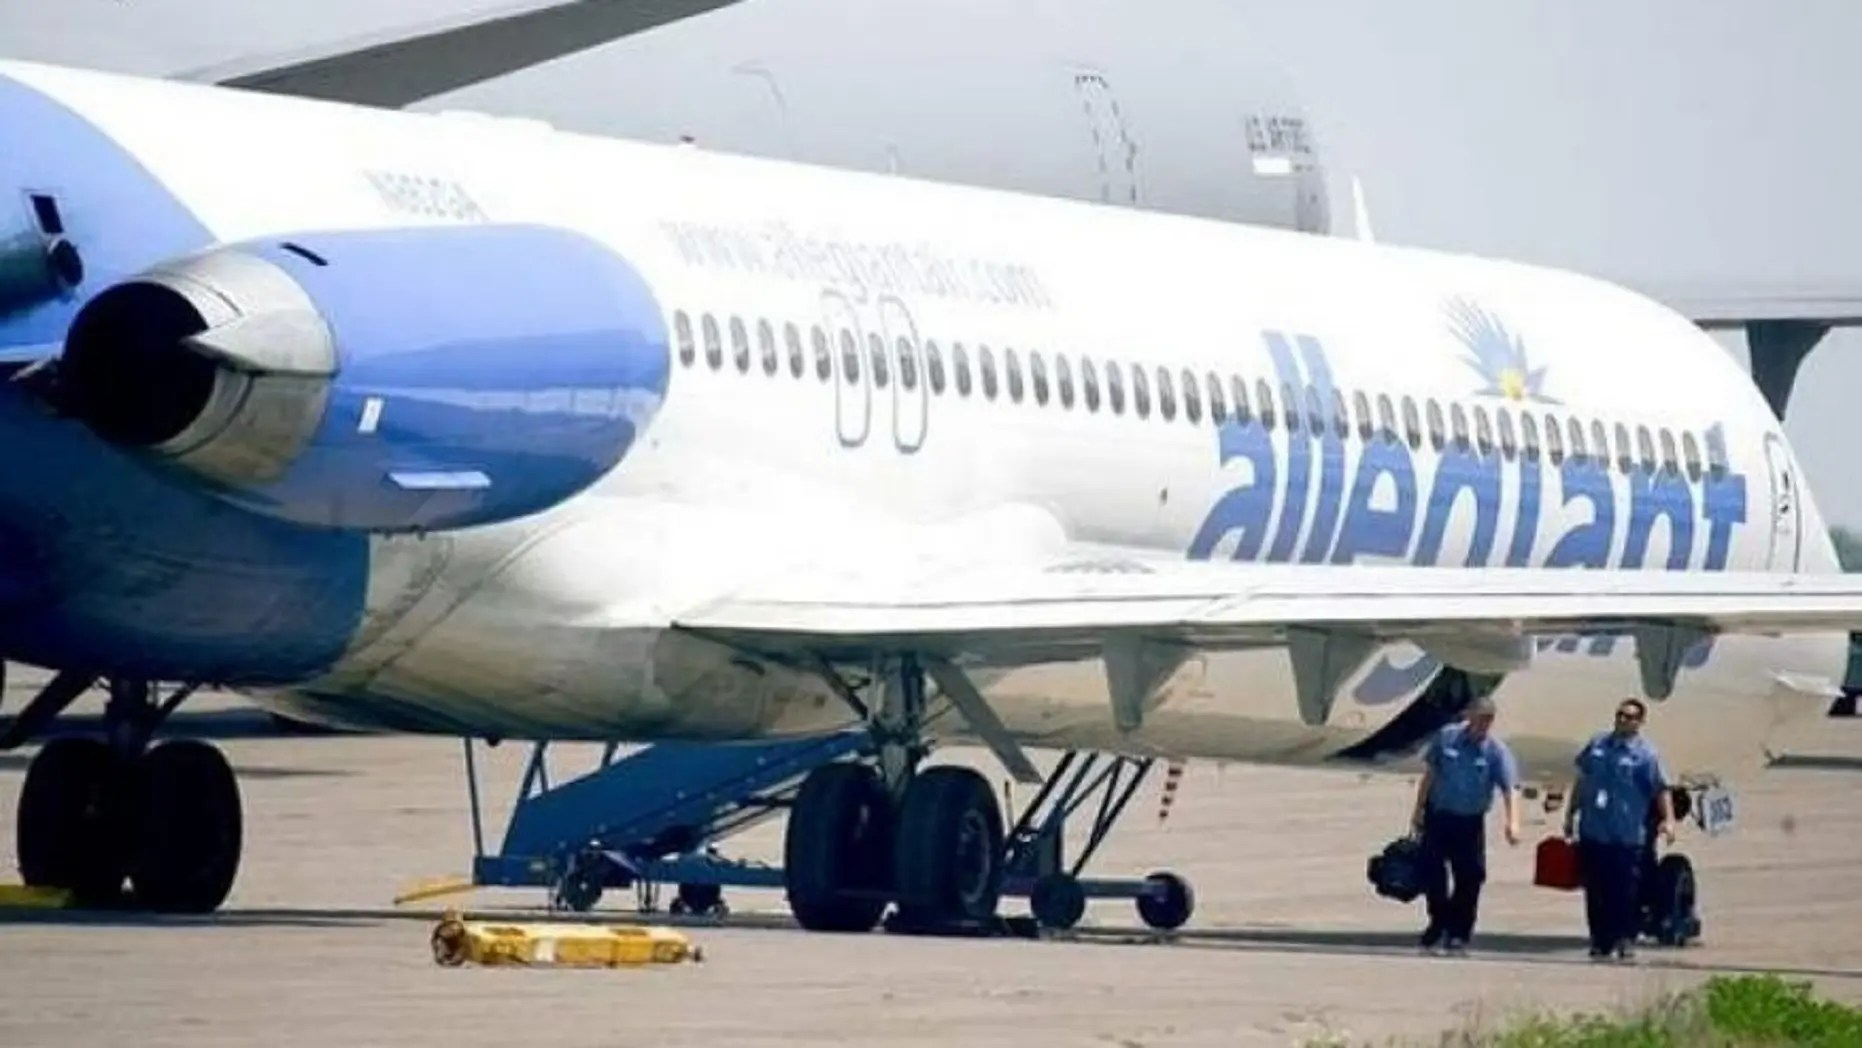 California Family Says They Were Kicked Off Allegiant